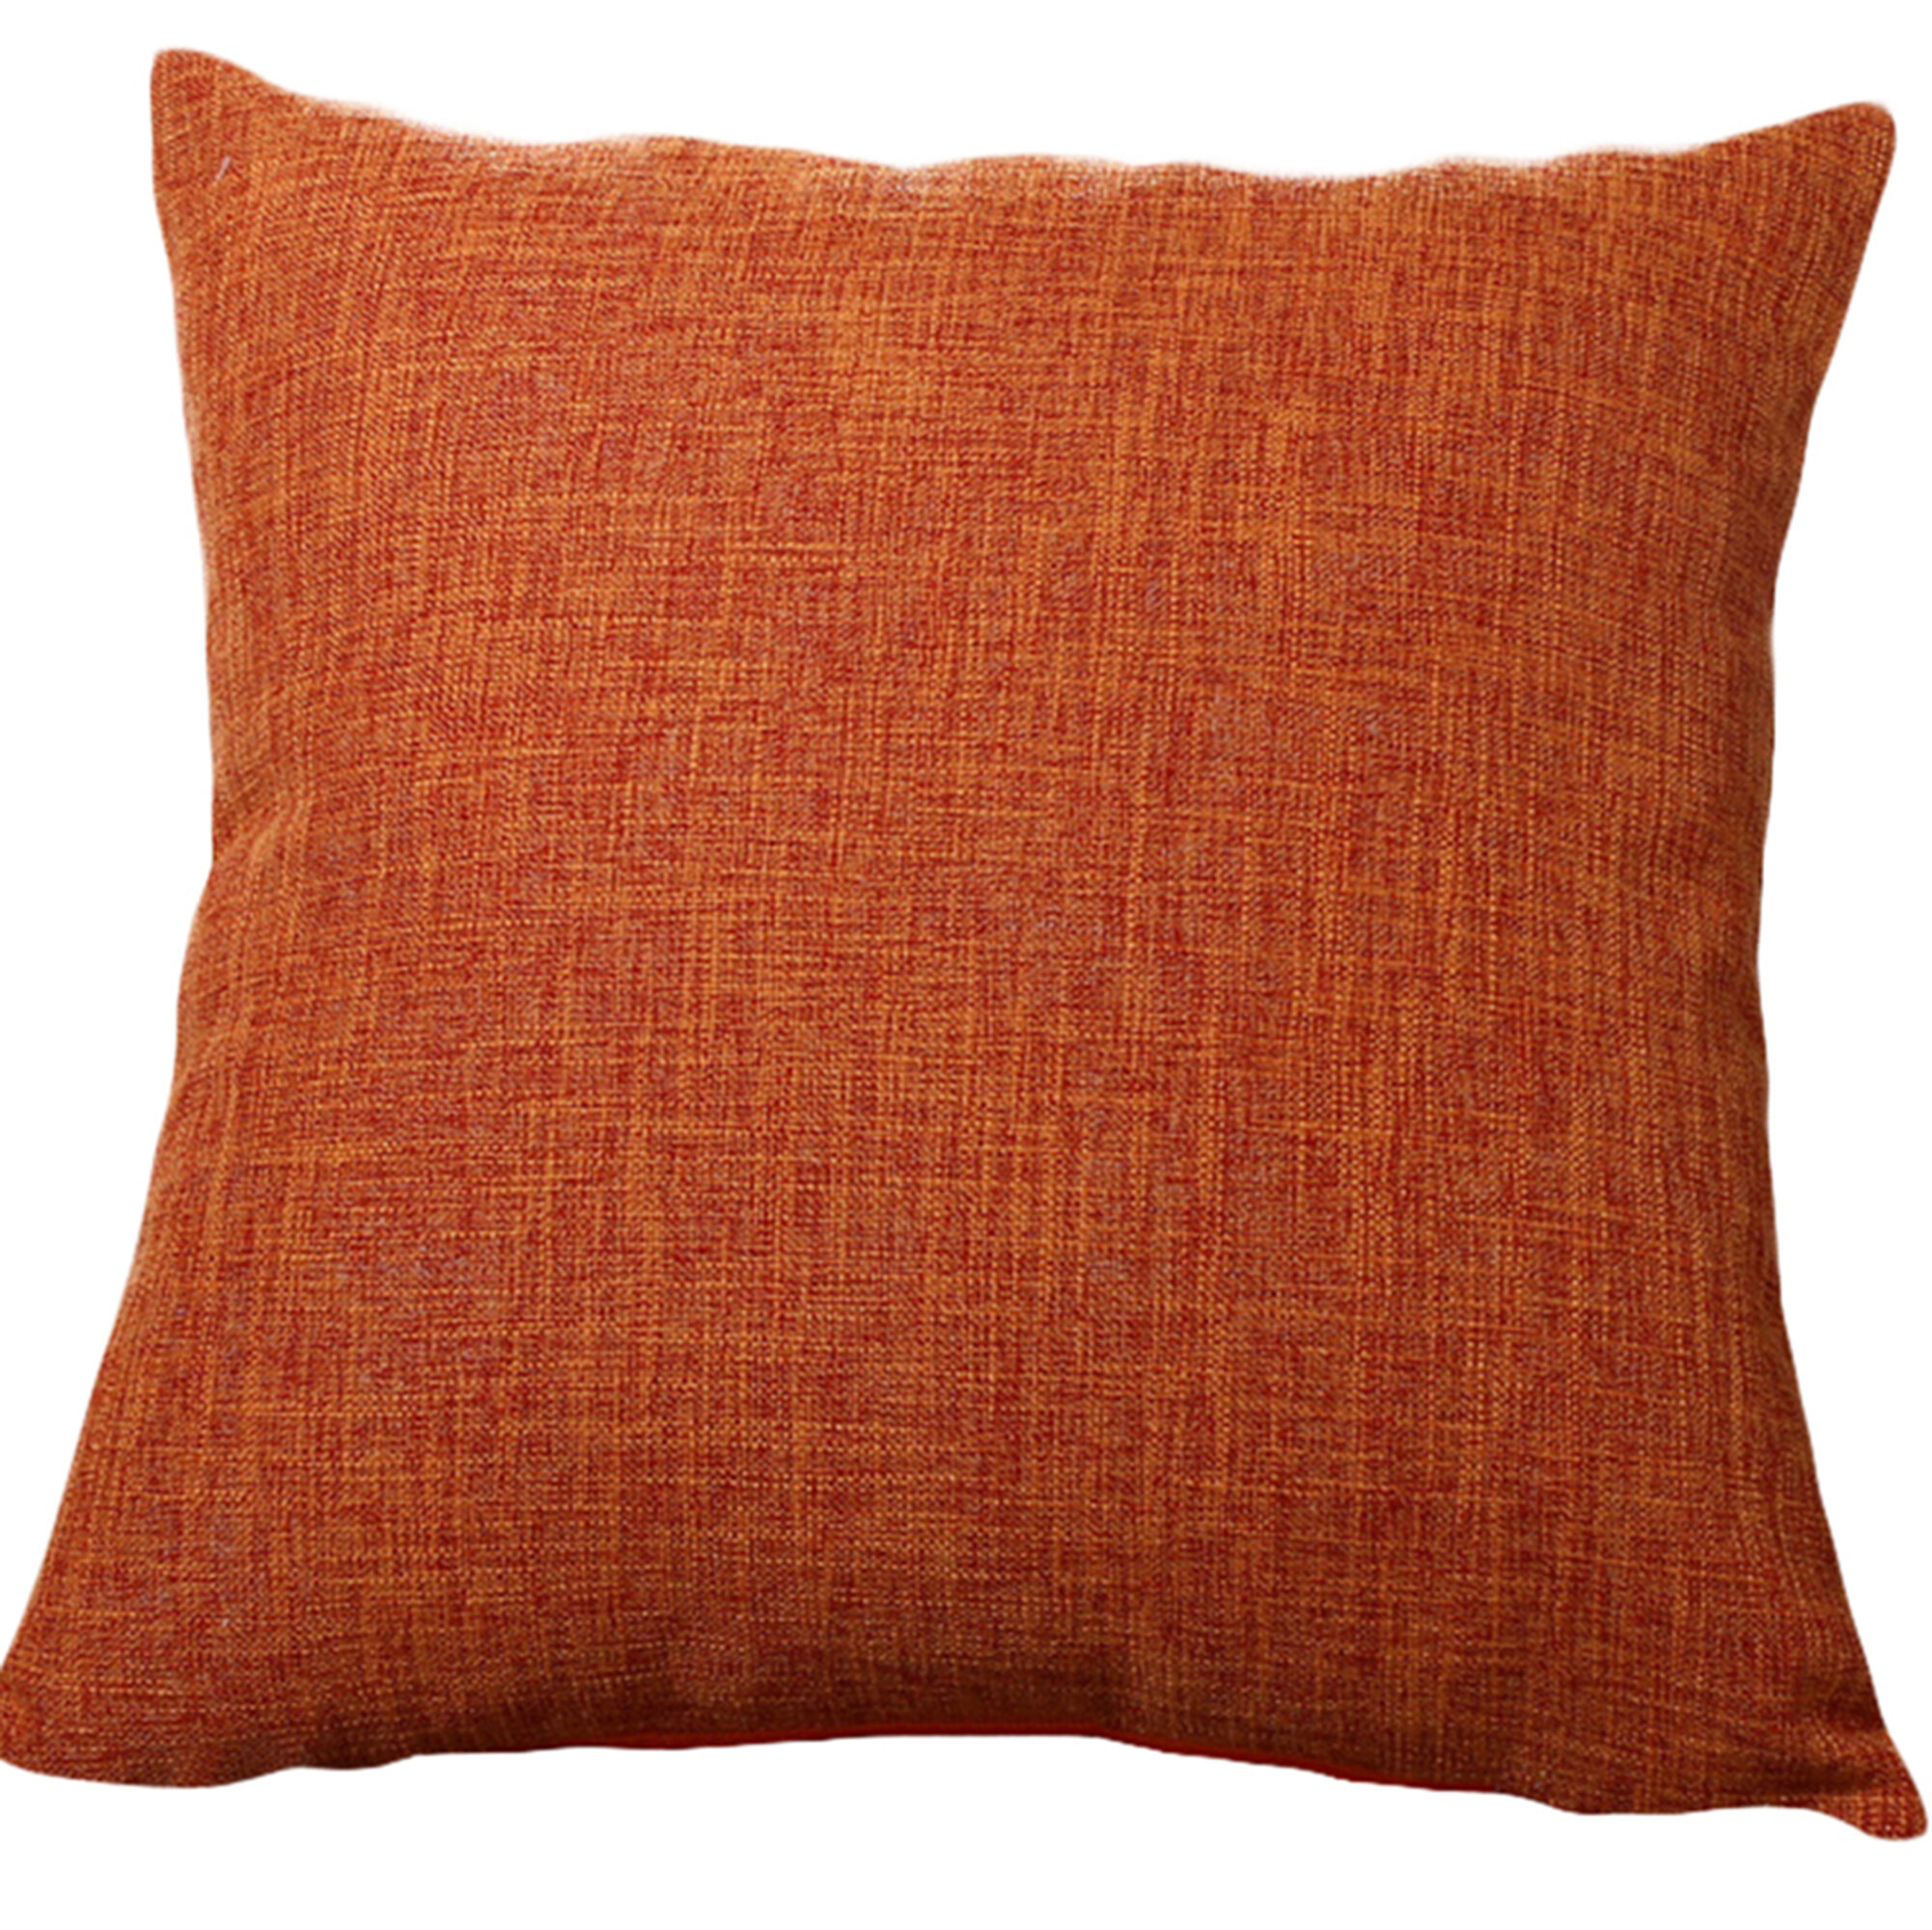 easy diy throw pillow covers step by step tutorial.htm throw pillows   decorative pillows you ll love in 2020  throw pillows   decorative pillows you